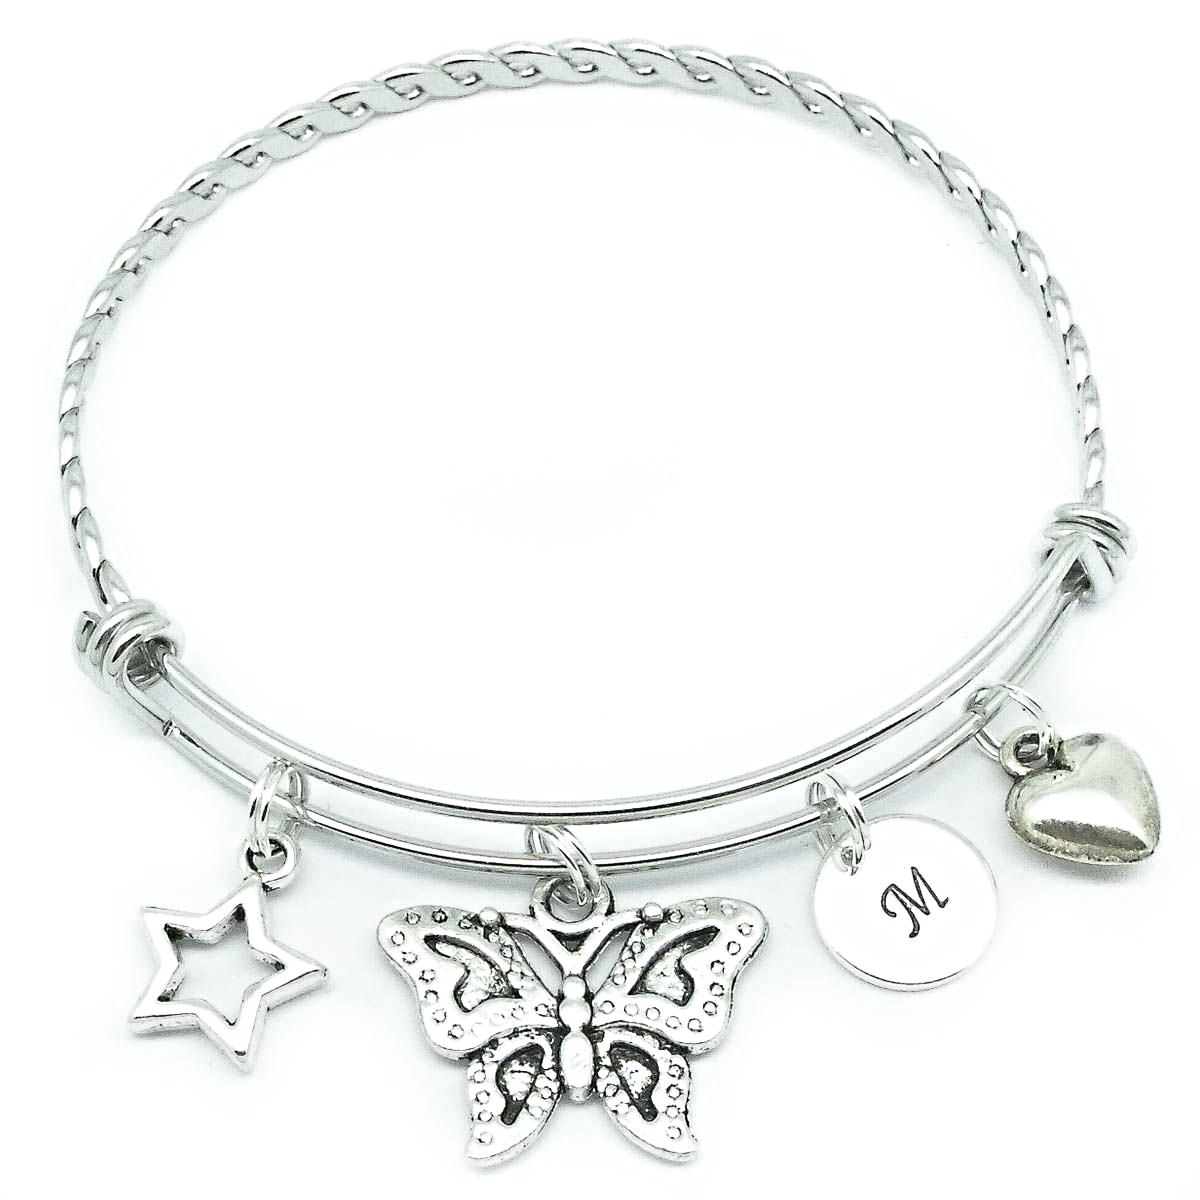 Initial Charms For Bracelets: Butterfly Heart & Star Initial Charm Bracelet